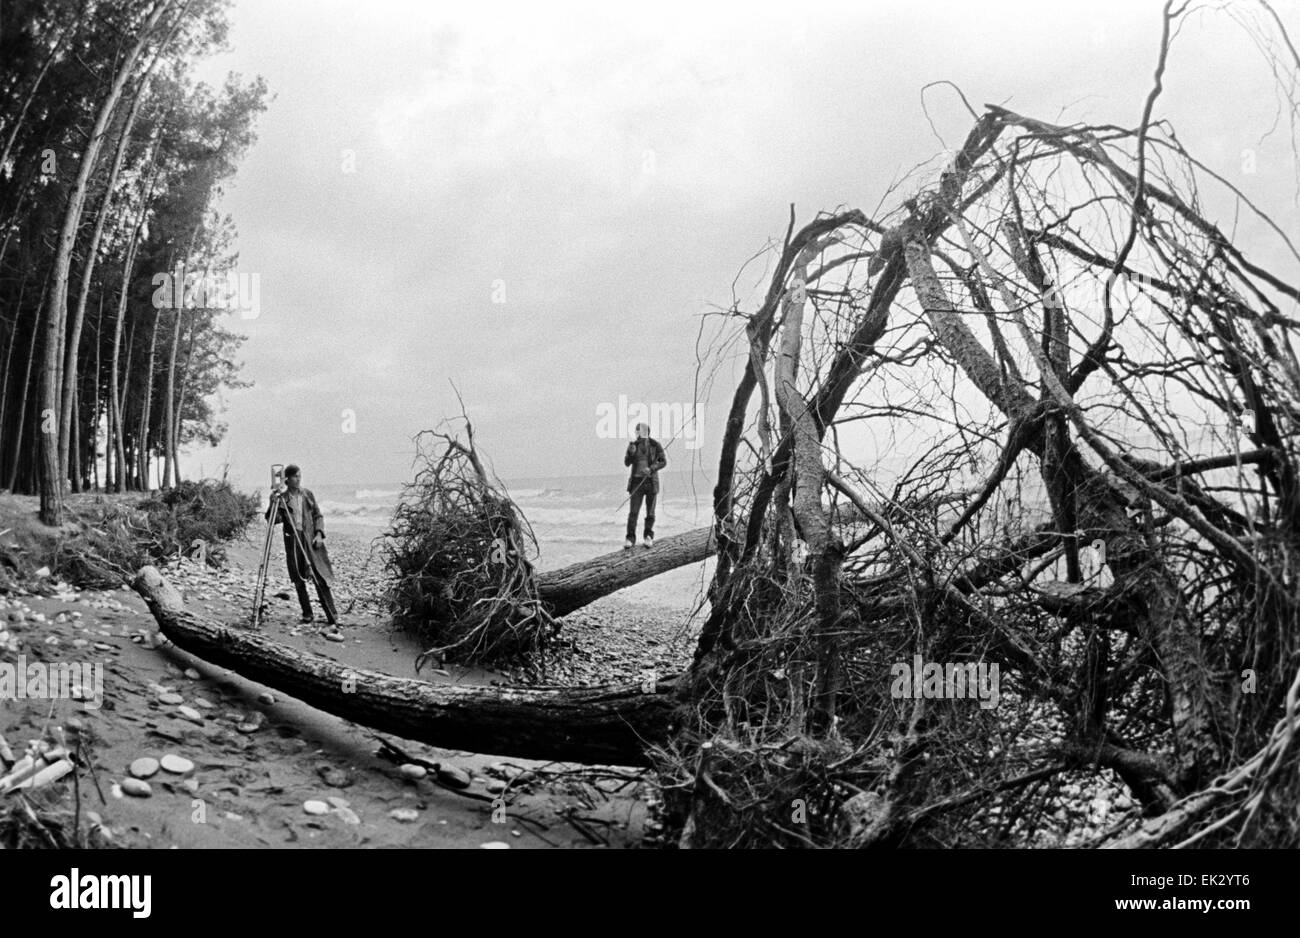 Pitsunda. Georgian SSR. USSR. Shore after storm. - Stock Image